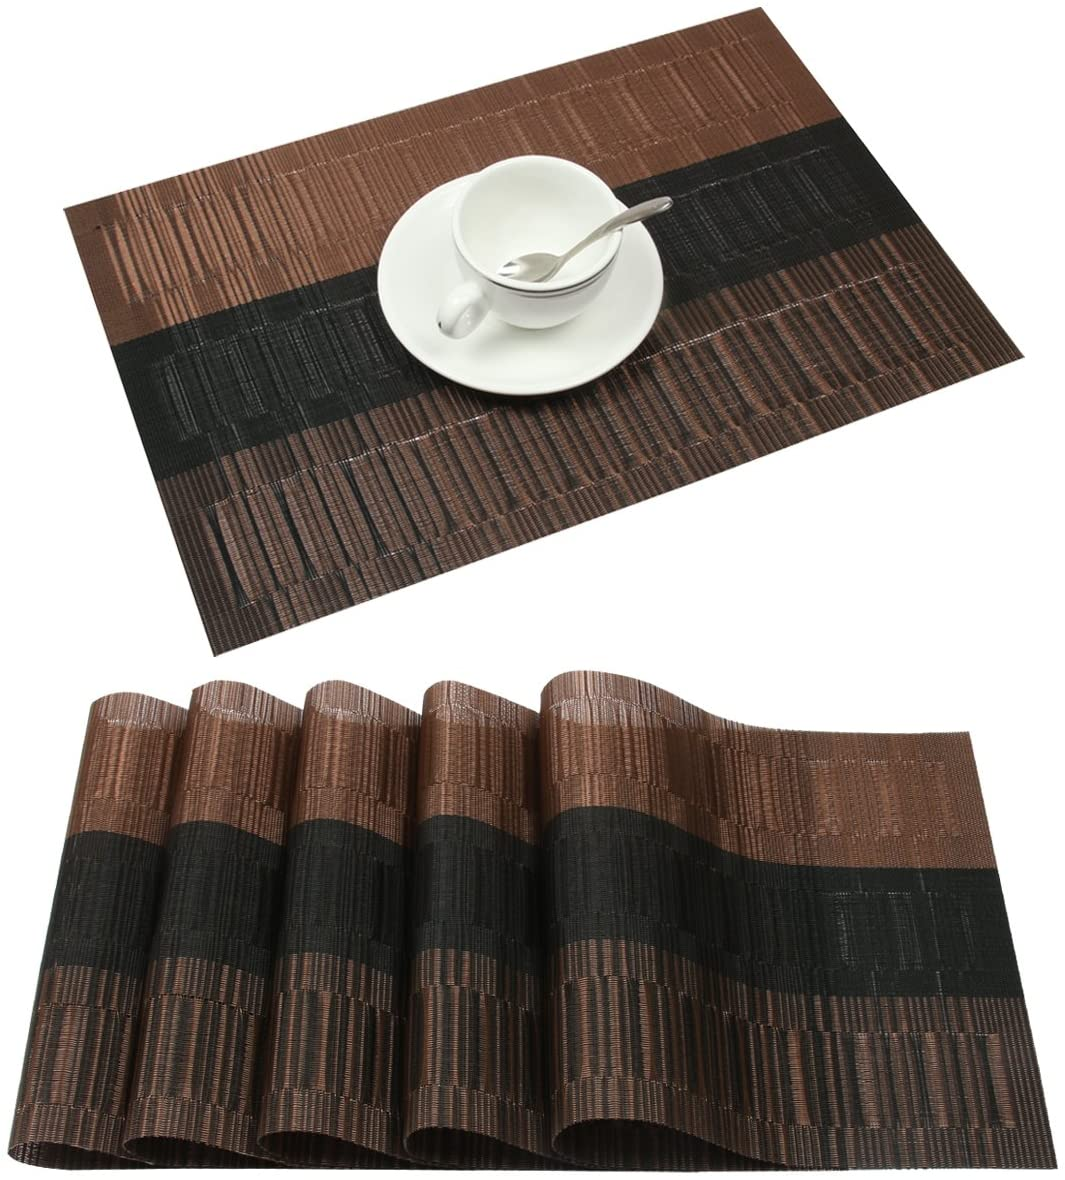 famibay Bamboo PVC Weave Placemats Non-Slip Table Mats for Kitchen Table Set of 6-30x45 cm (Set of 6 Coffee)